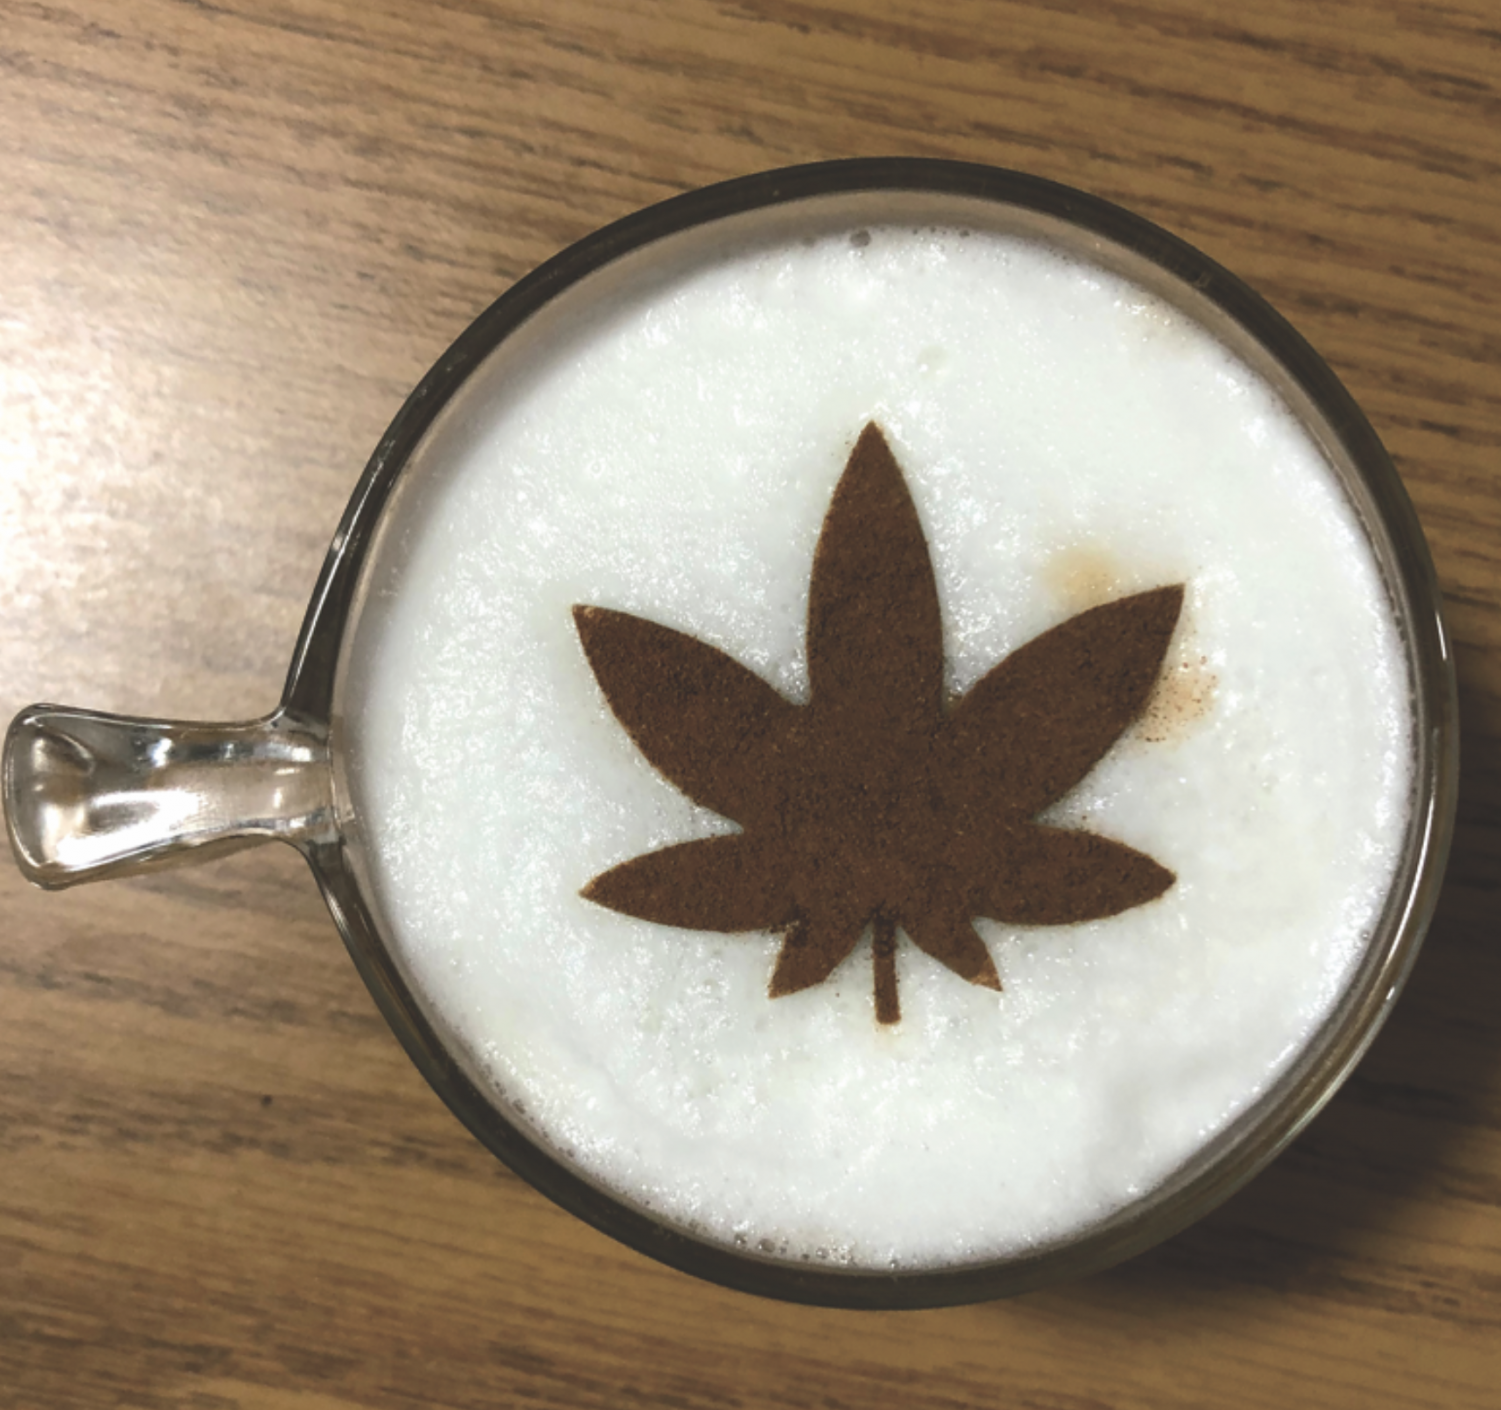 Forget oatmilk, CBD is the next fad item to put in your coffee.